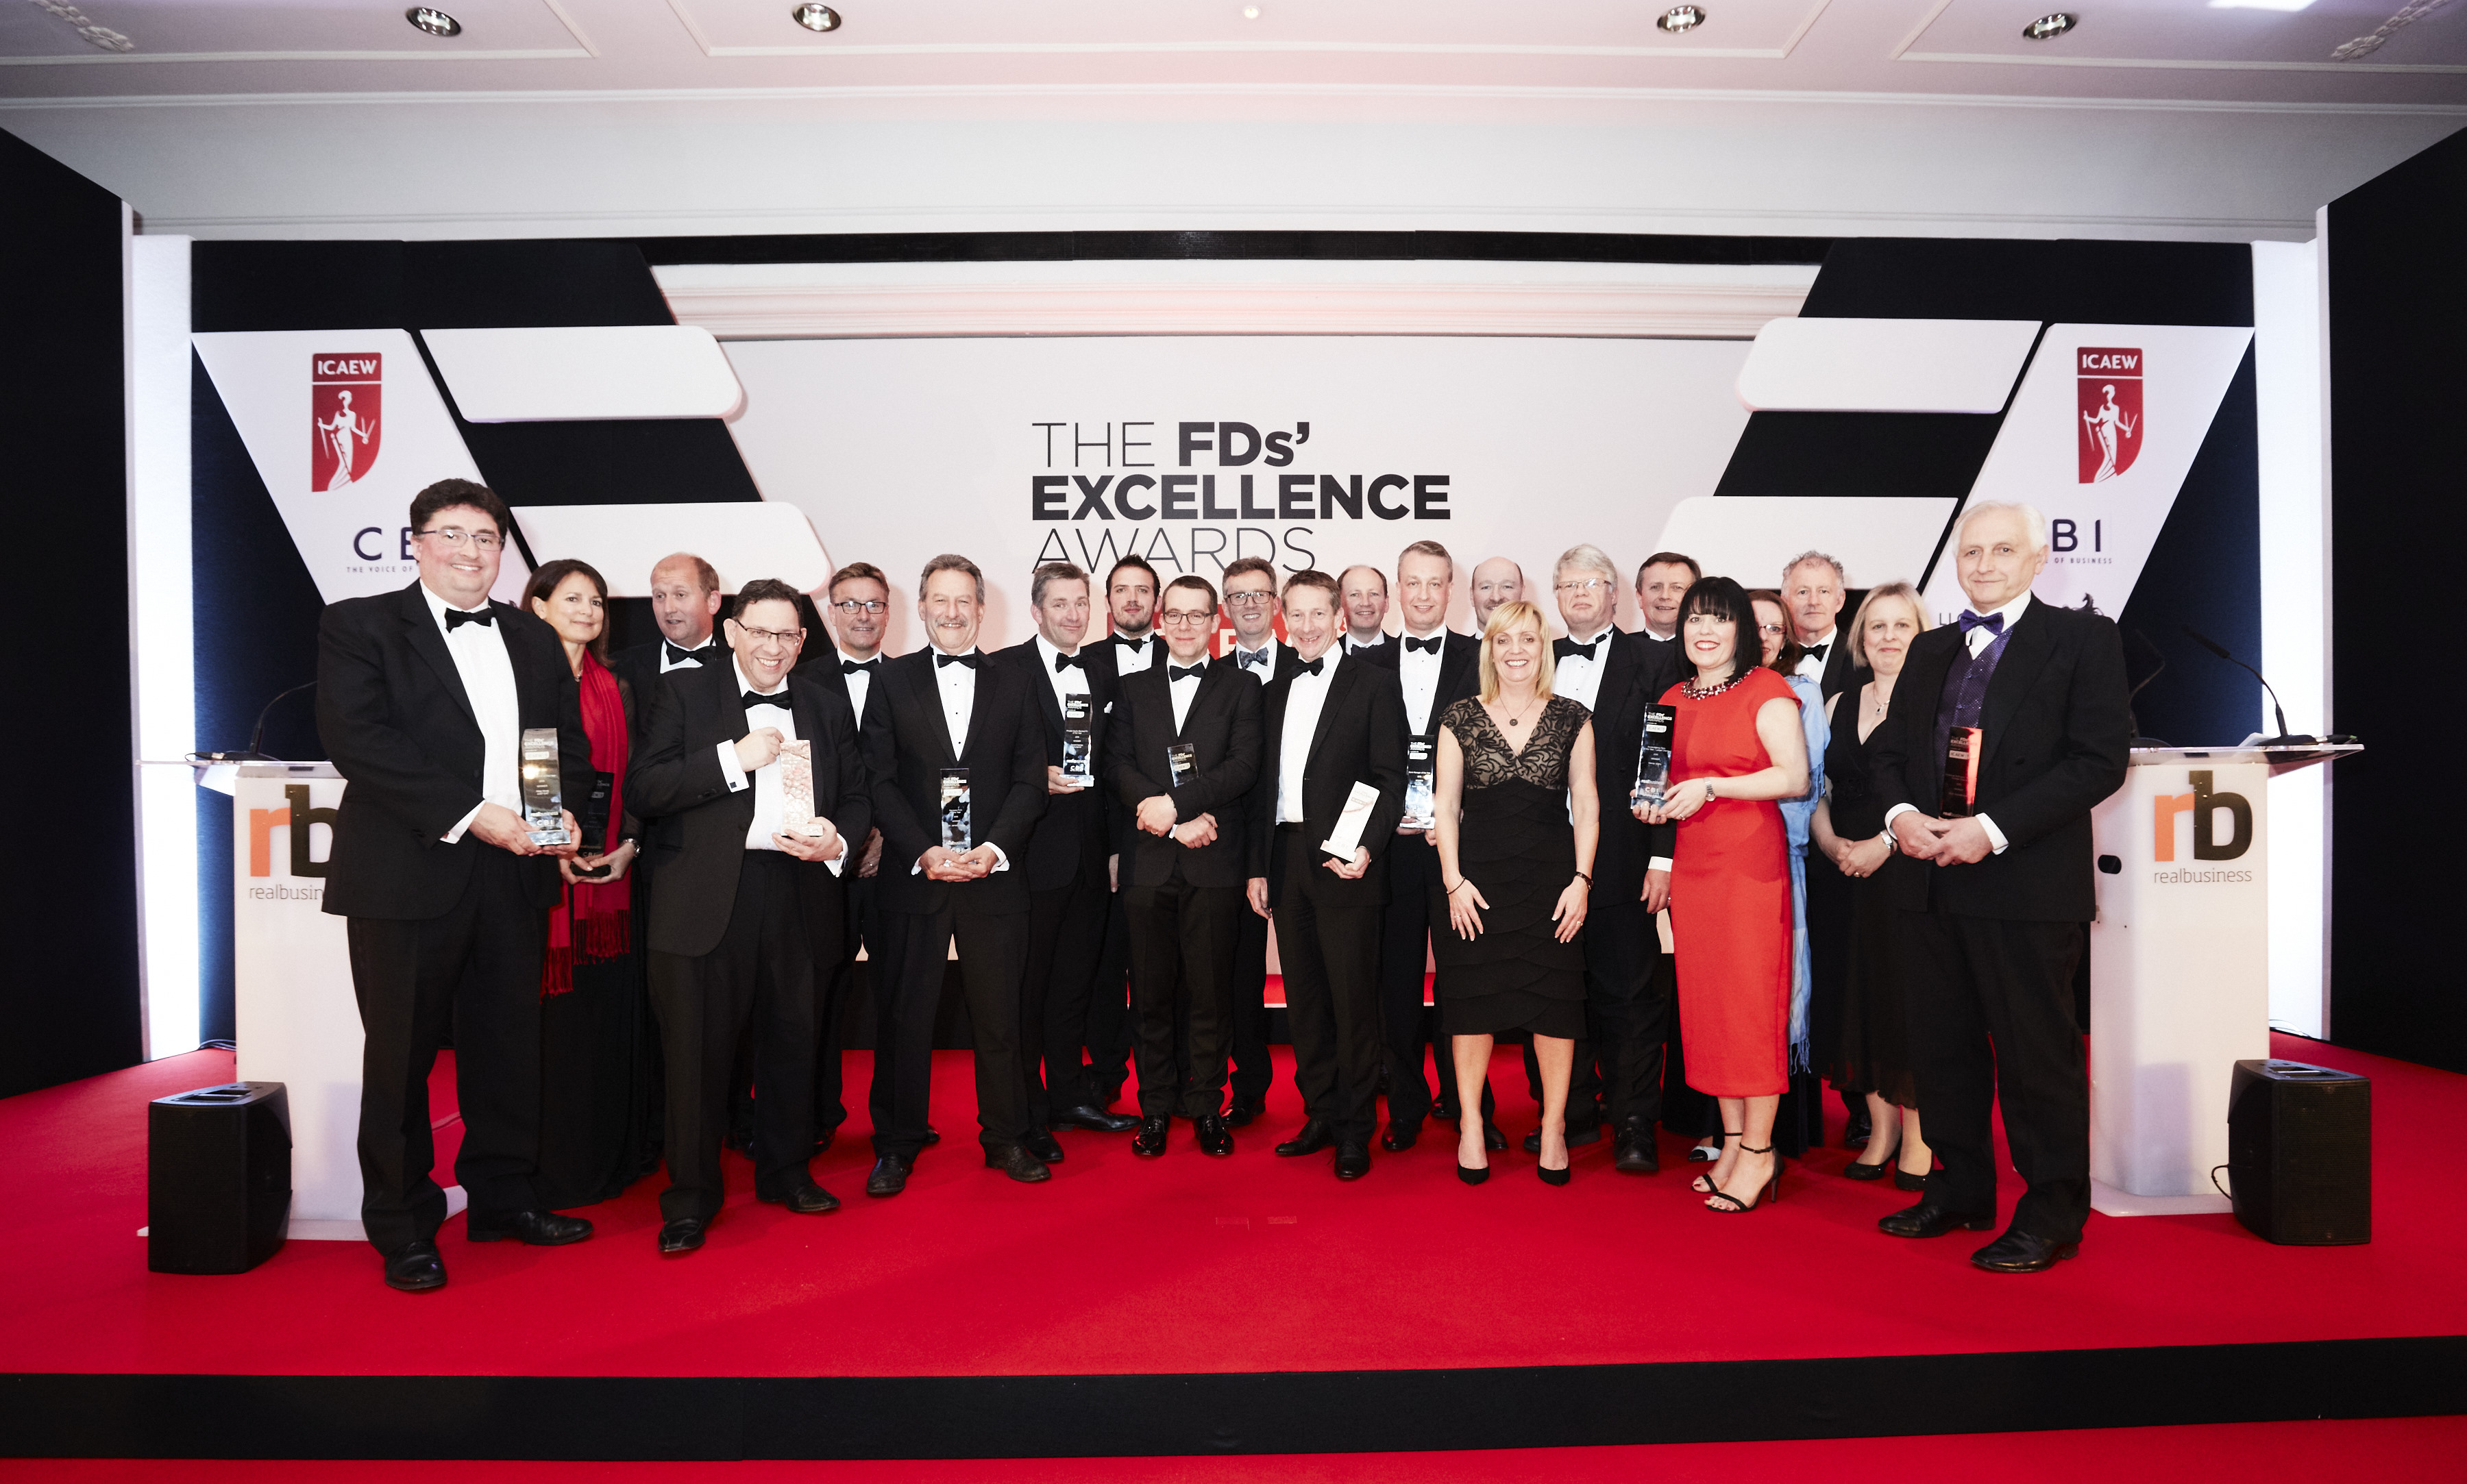 JUST EAT, CitySprint and easyJet FDs amongst winners at 2015 FDs' Excellence Awards